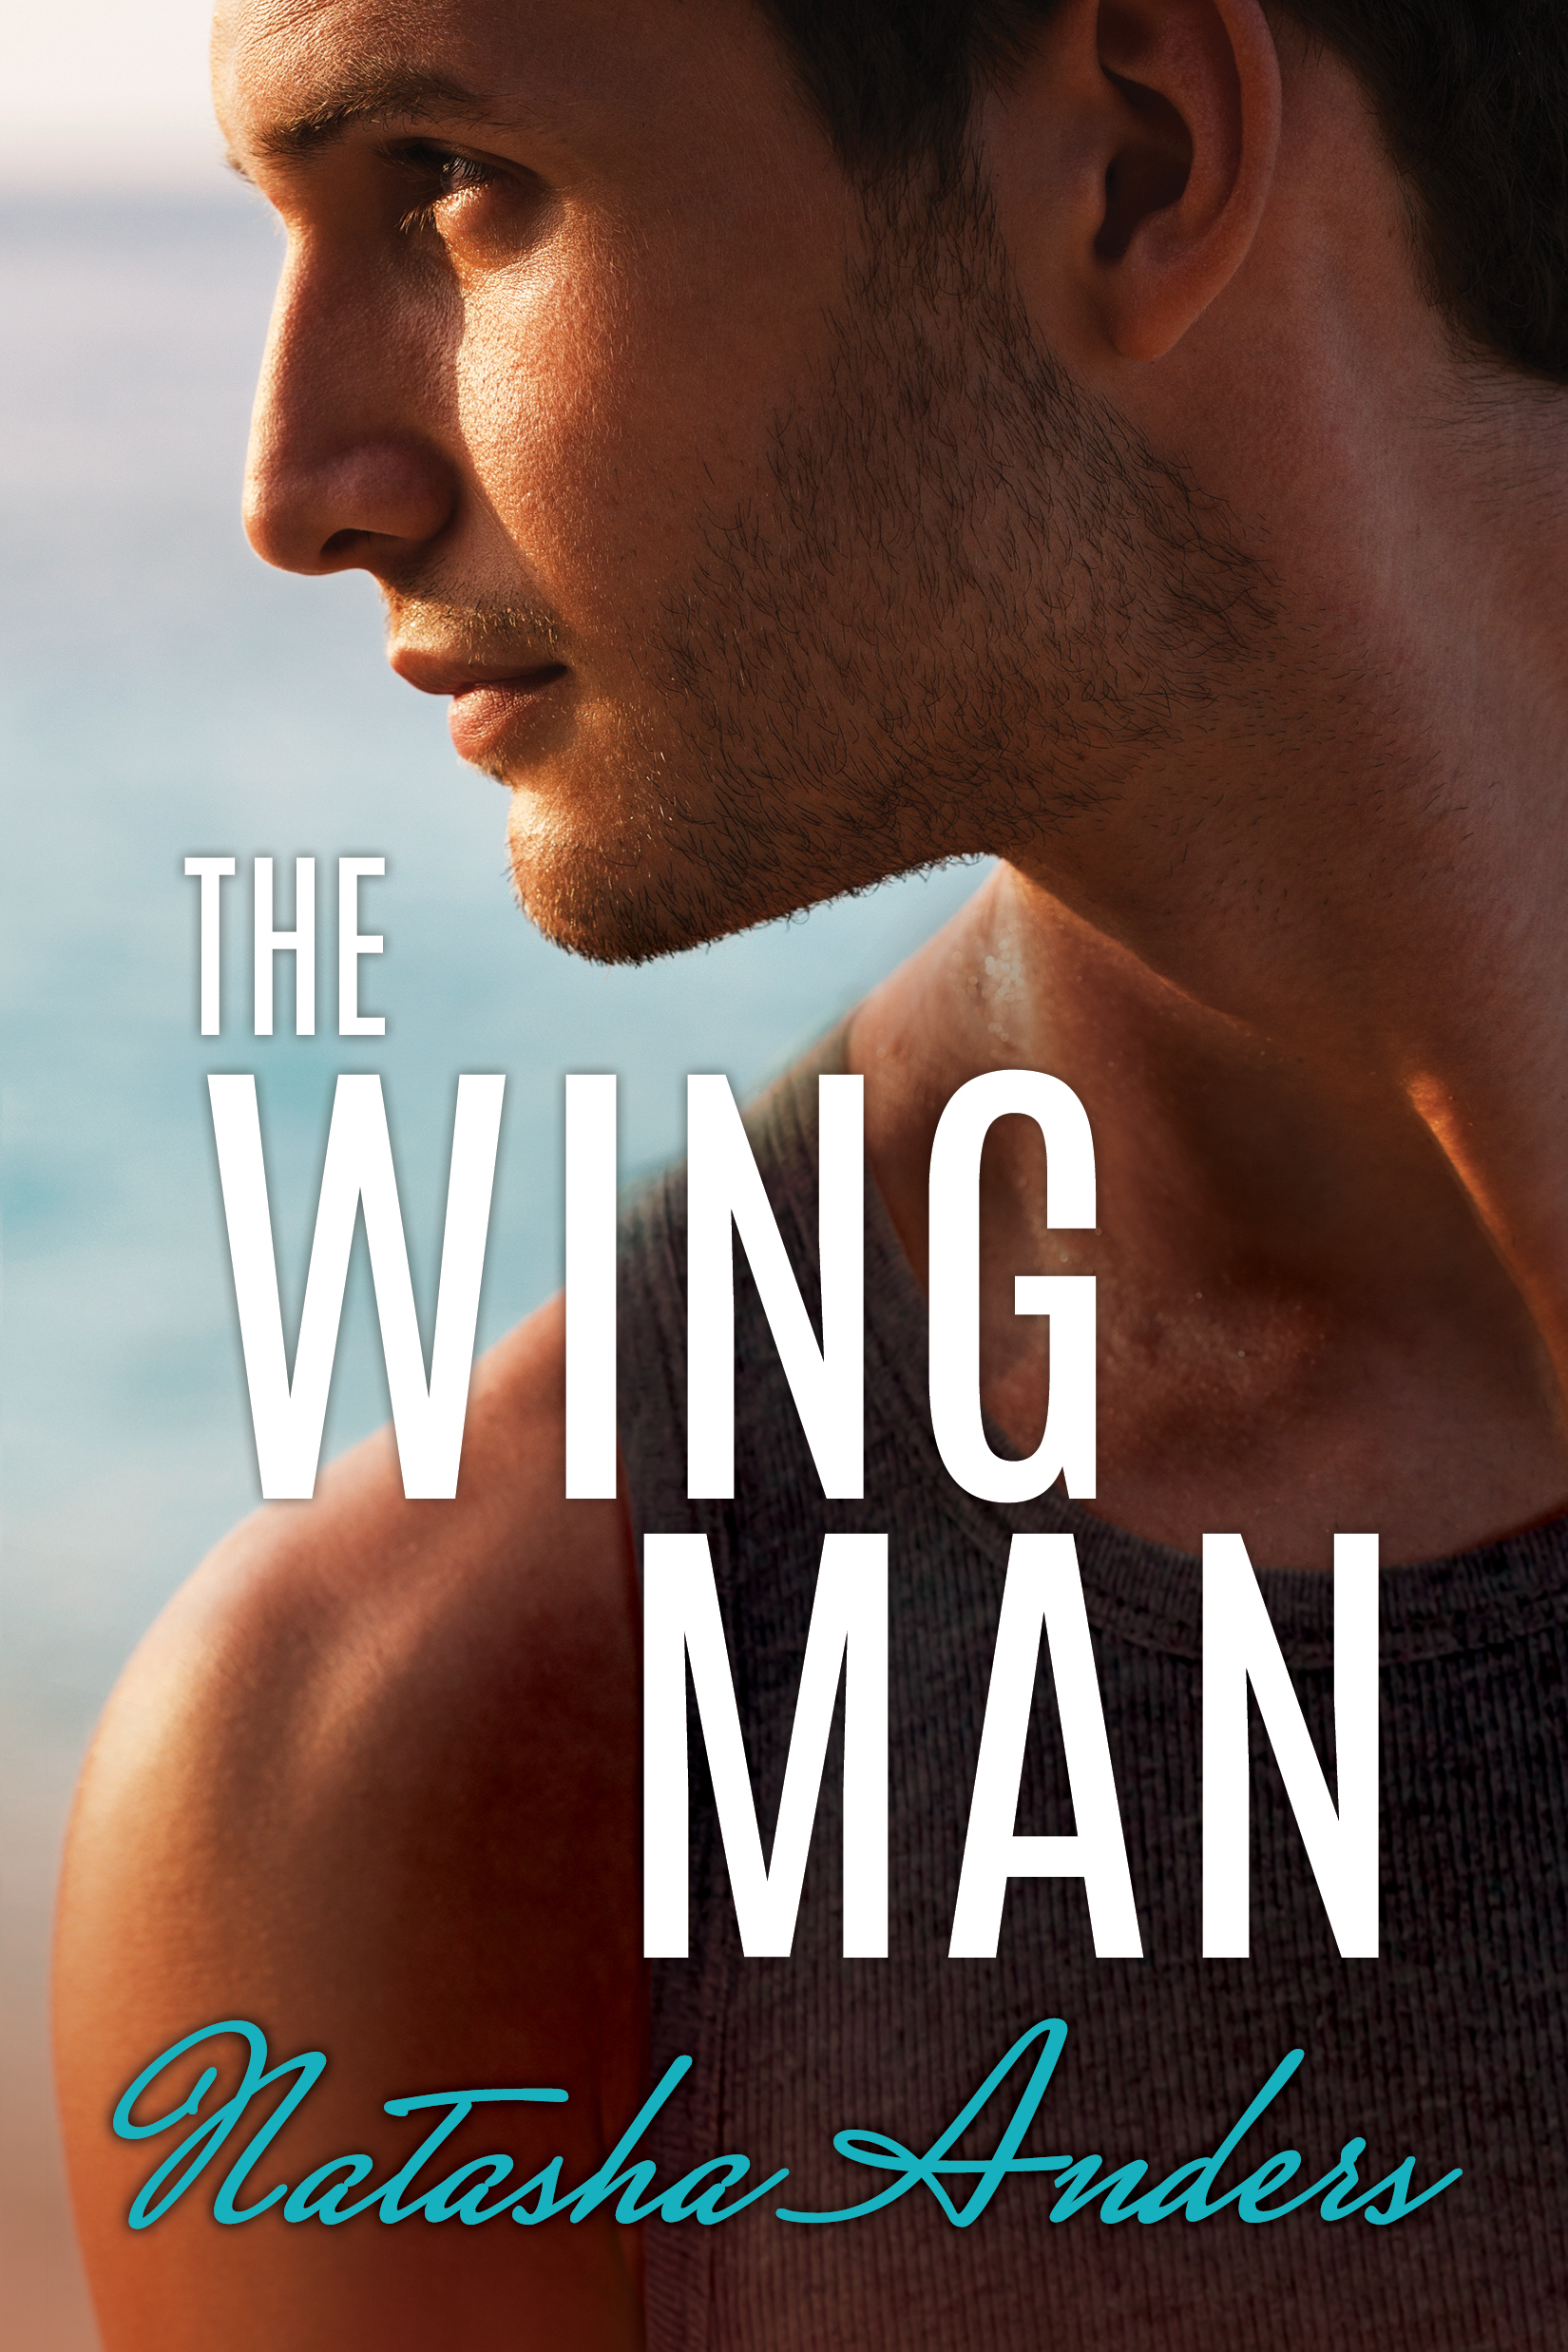 THE WINGMAN